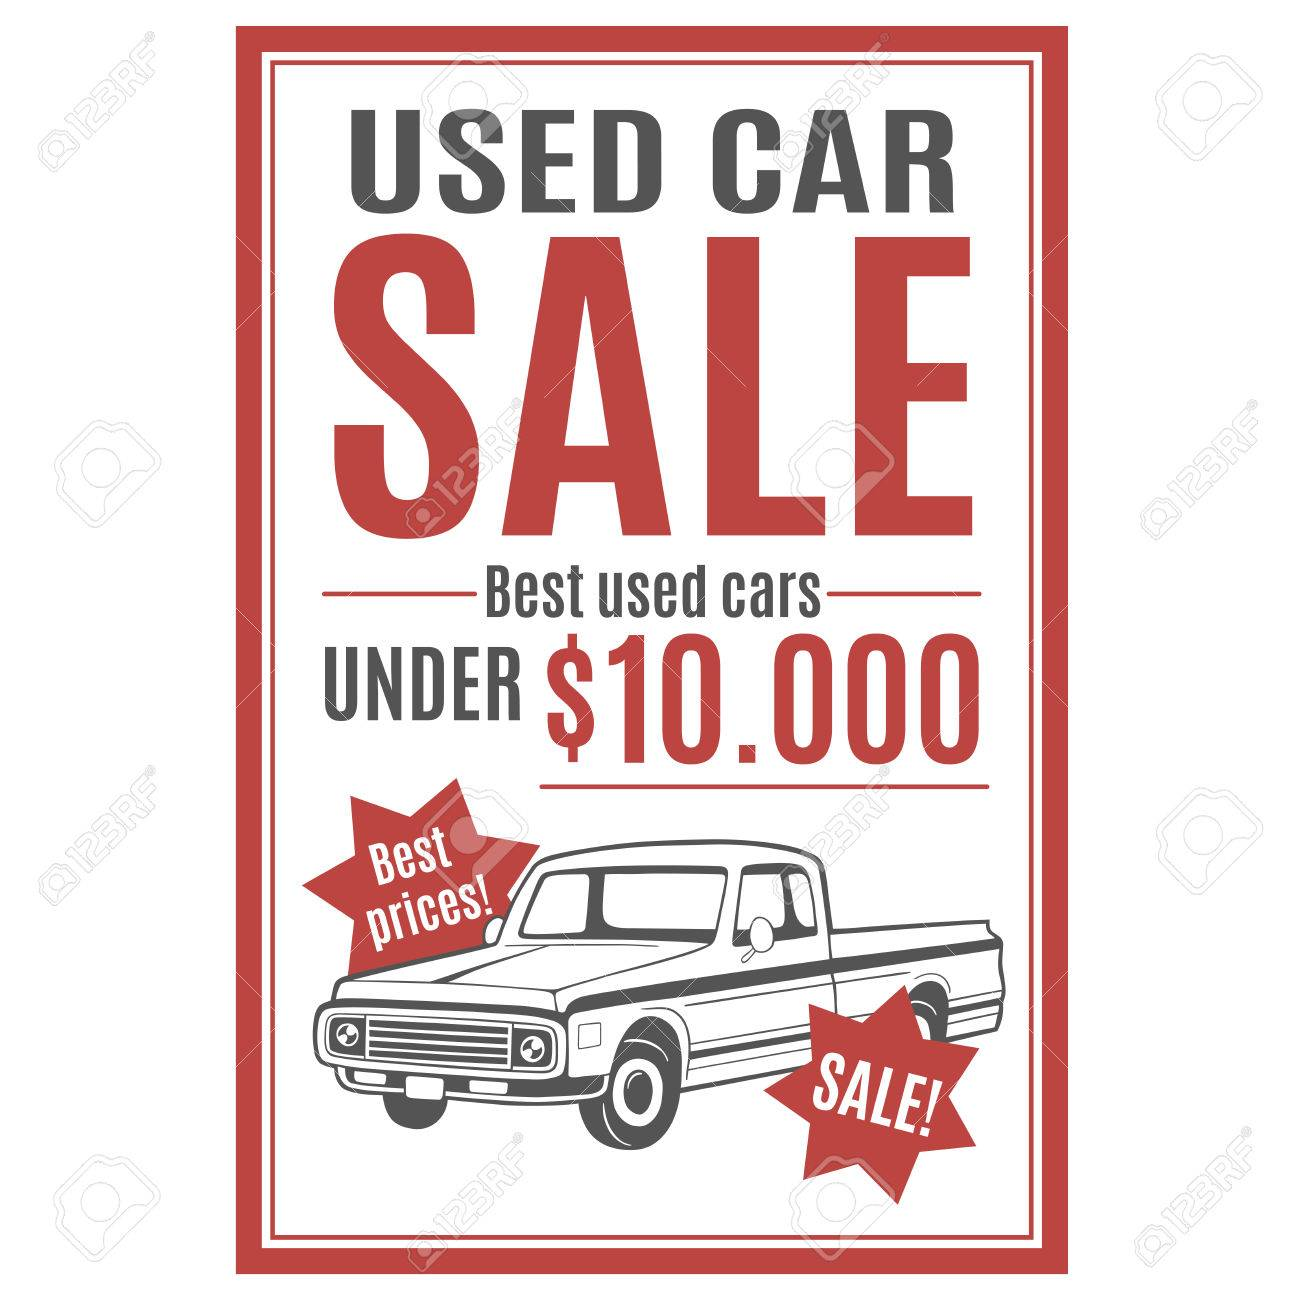 Printable Car For Sale Sign. Downloadable Attendance Sheet Car For Sale  Sign Printable Found .  Printable Car For Sale Sign Template